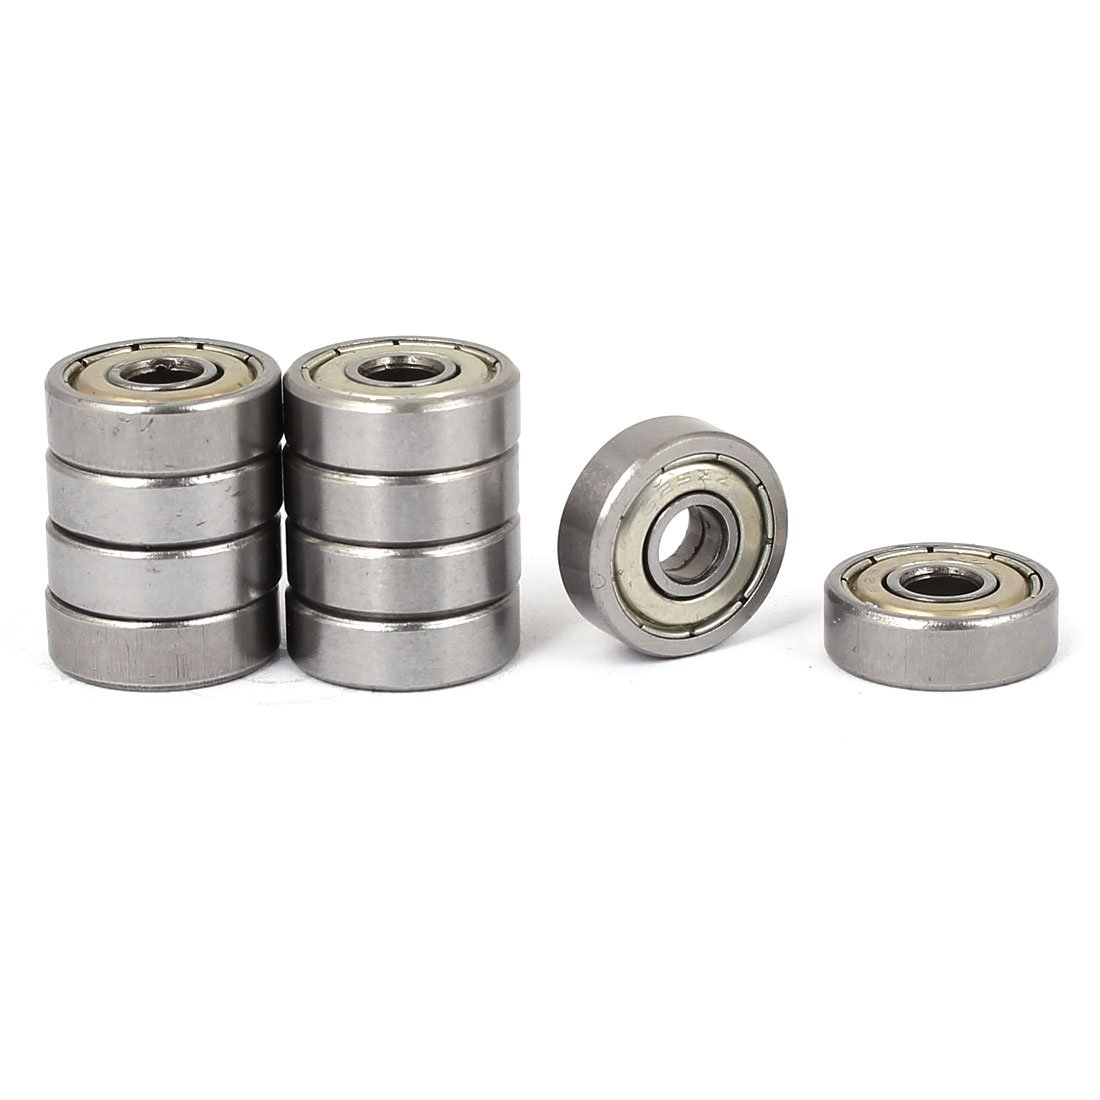 10 pieces of High Quality 609-ZZ bearing  609 ZZ bearings 9mm x 24mm x 7mm